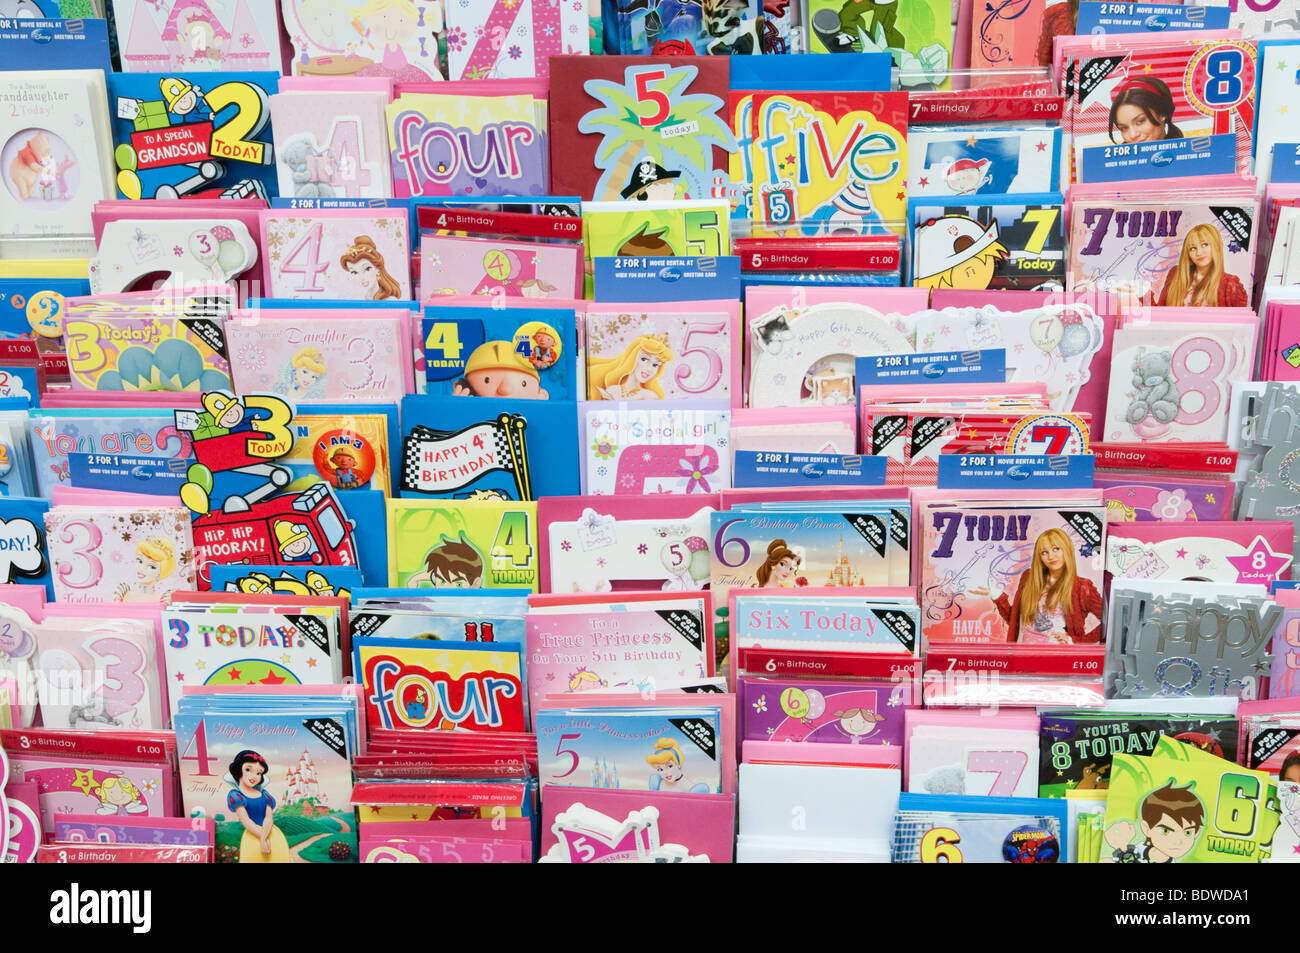 Rack Of Birthday Cards In Clinton Shop England UK